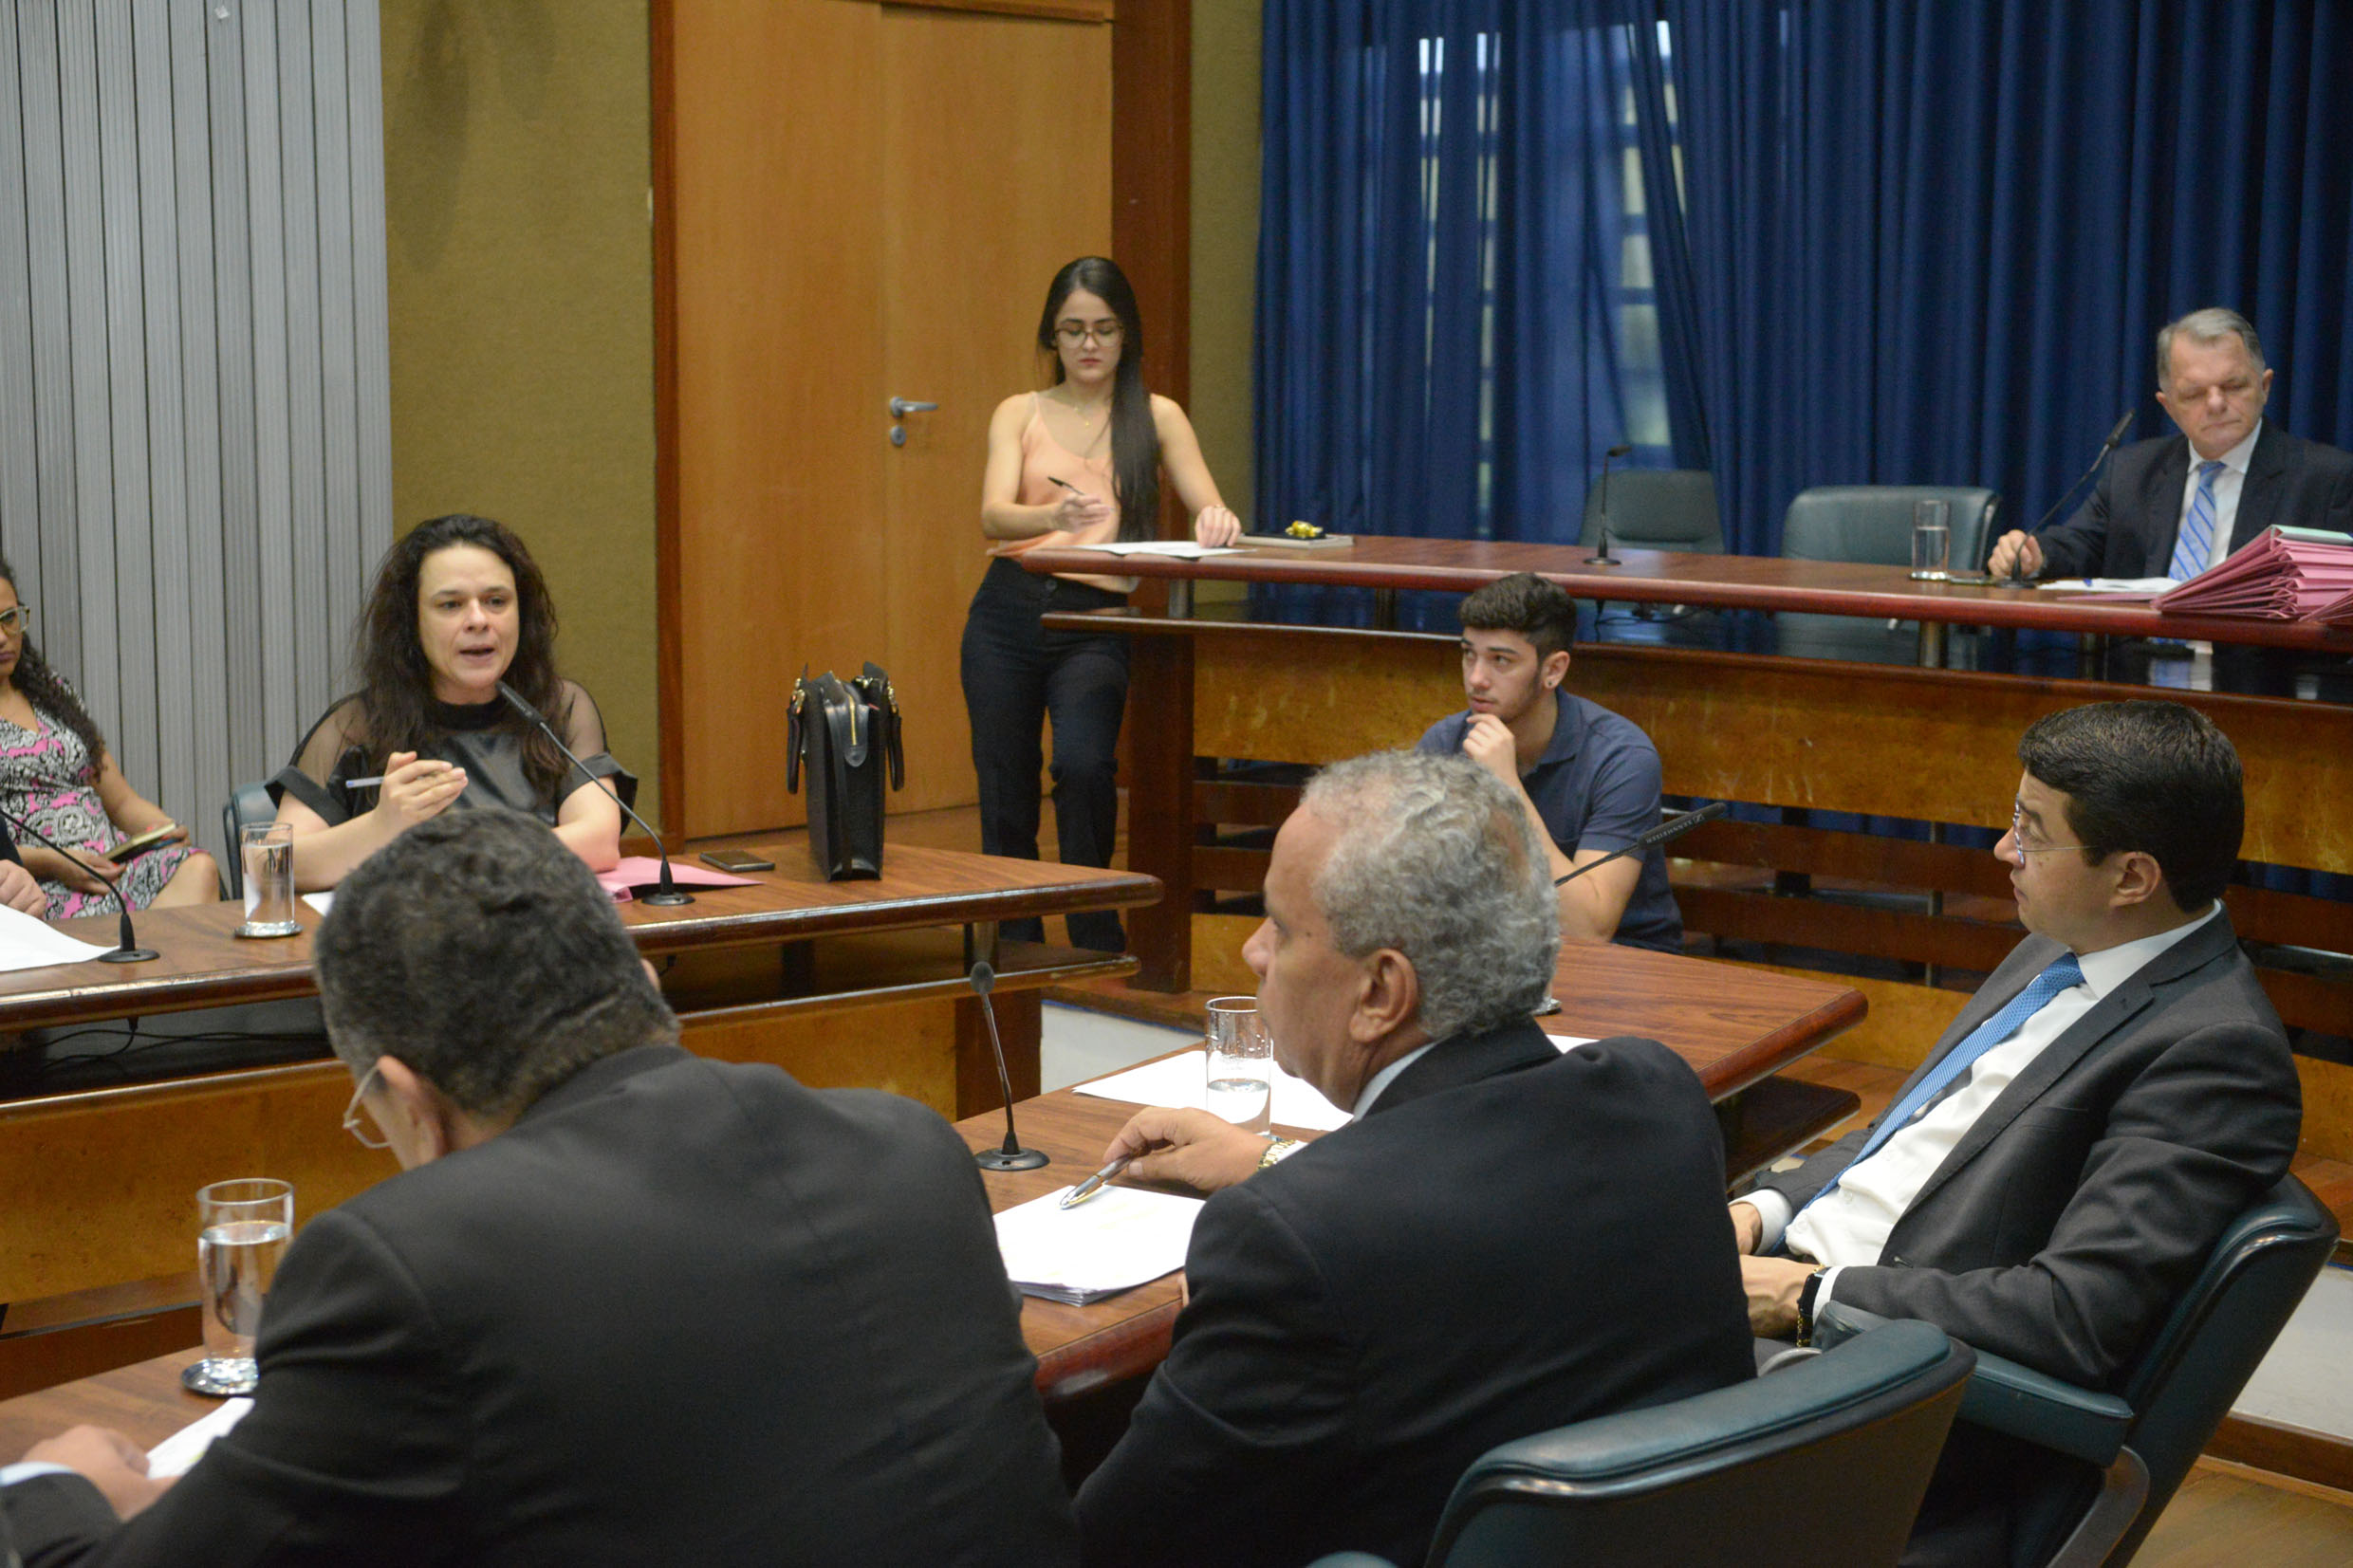 Parlamentares na comissão<a style='float:right' href='https://www3.al.sp.gov.br/repositorio/noticia/N-06-2019/fg236448.jpg' target=_blank><img src='/_img/material-file-download-white.png' width='14px' alt='Clique para baixar a imagem'></a>